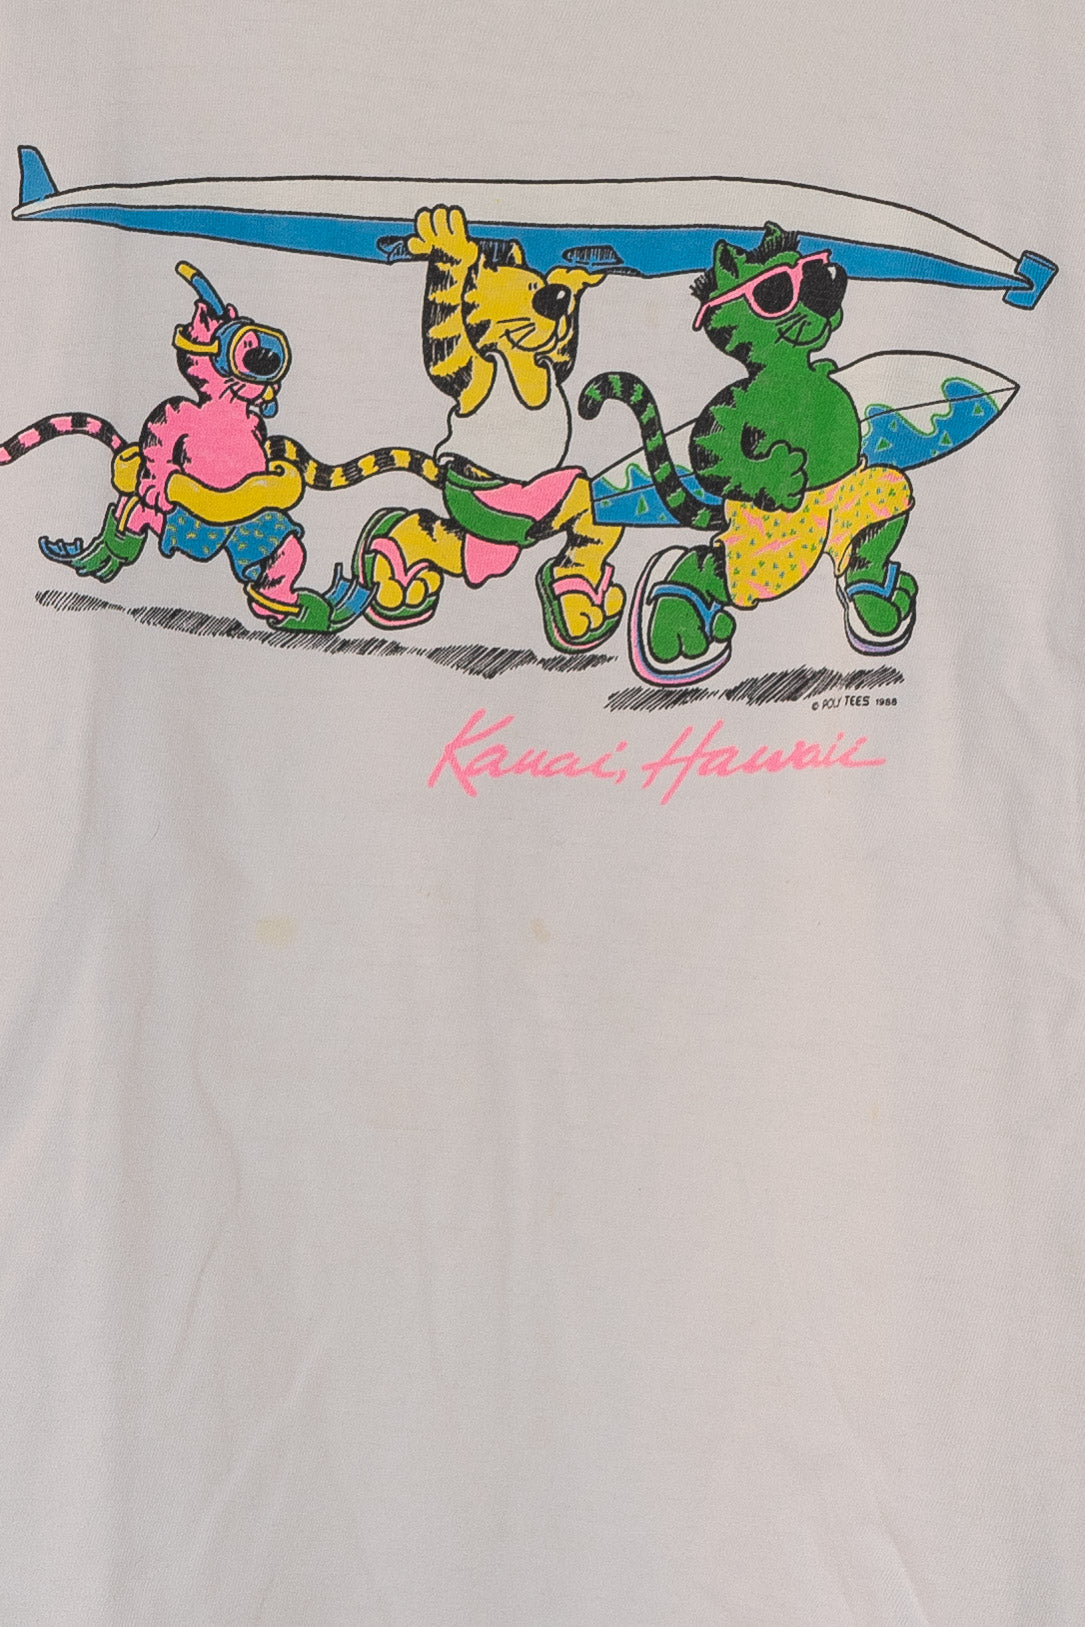 '88 Cat Surf Kauai Hawaii Tee - XXS